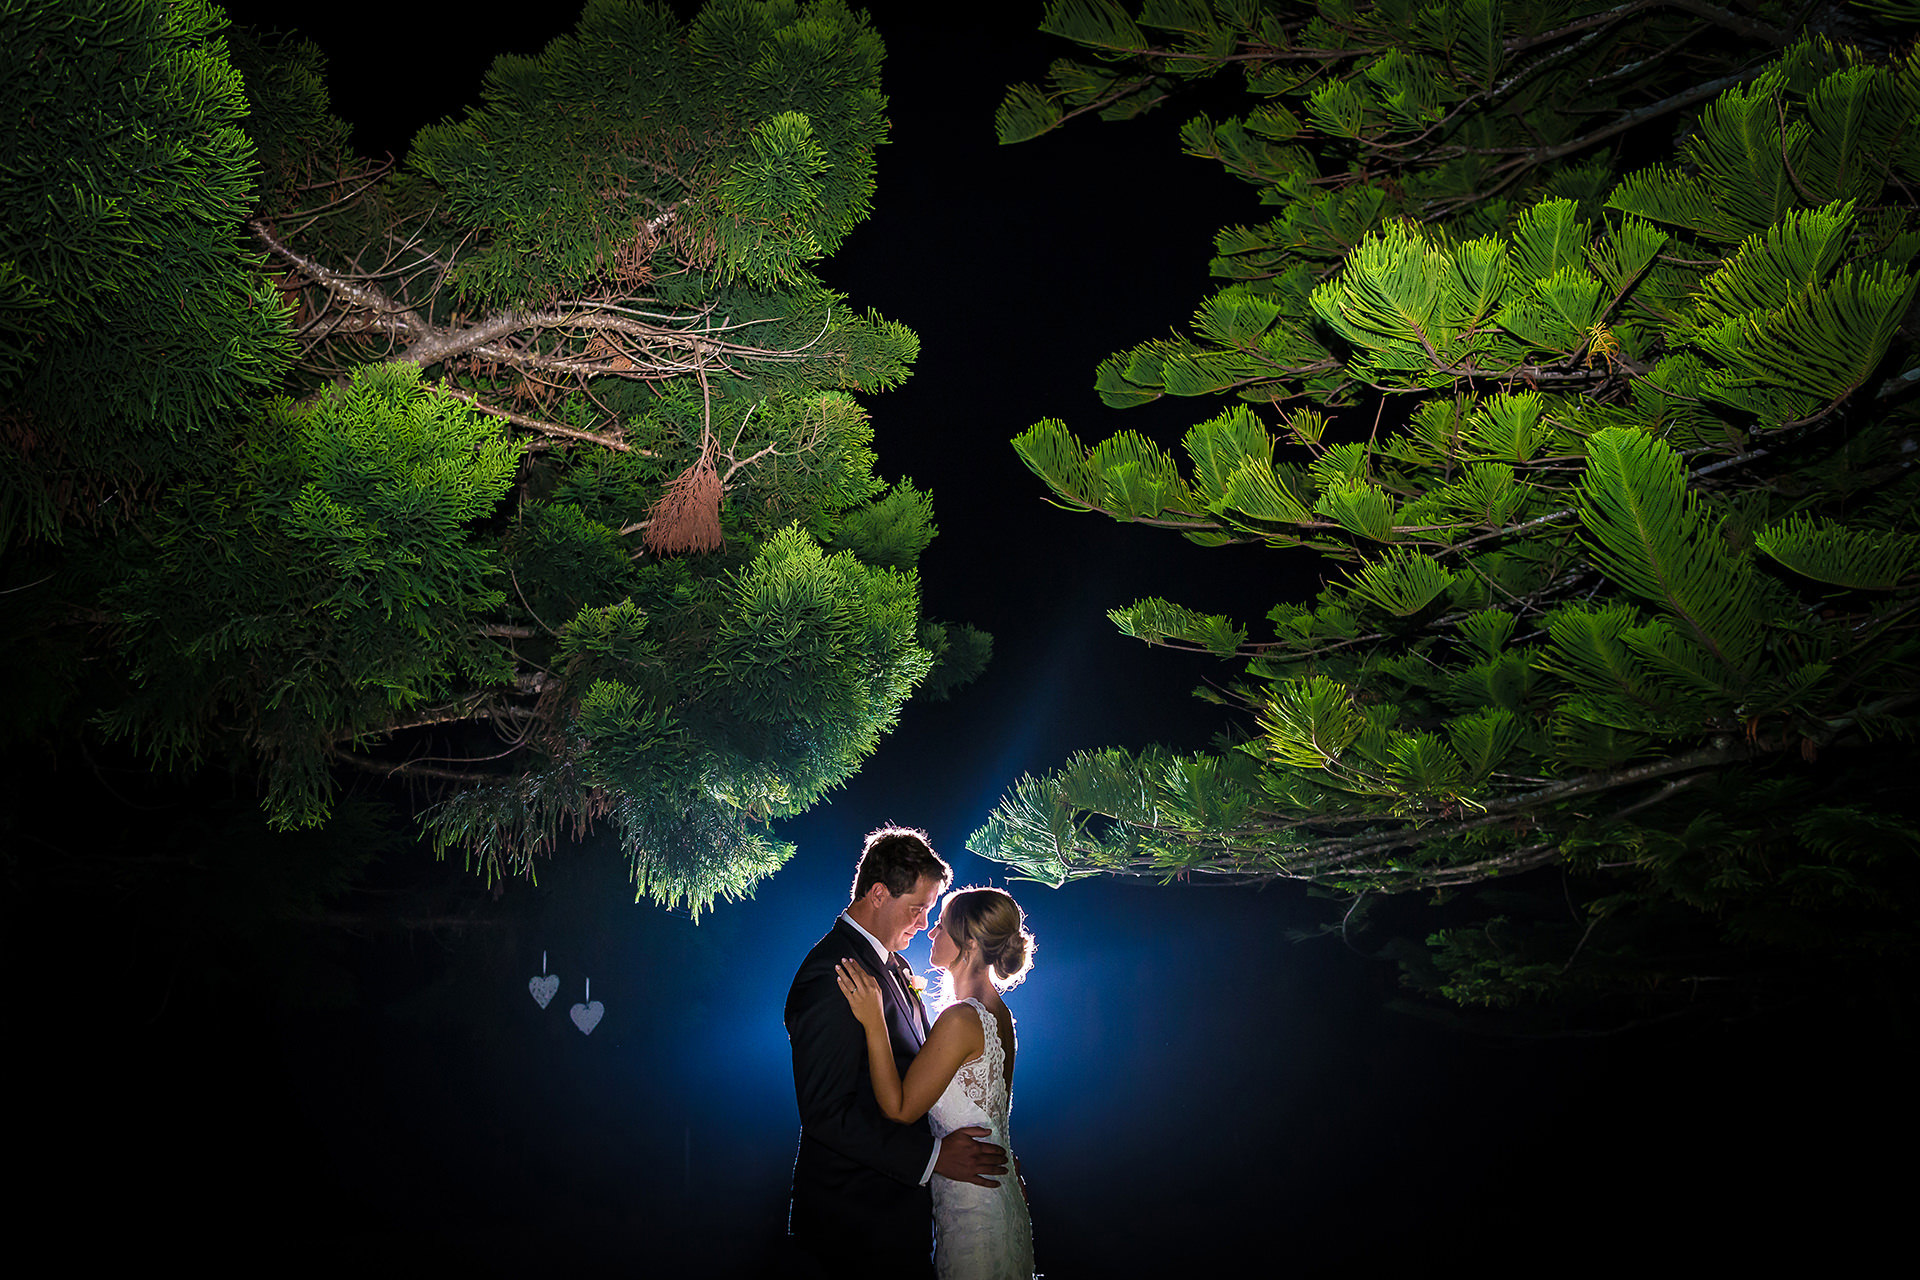 Sydney wedding photographer Andrew Szopory